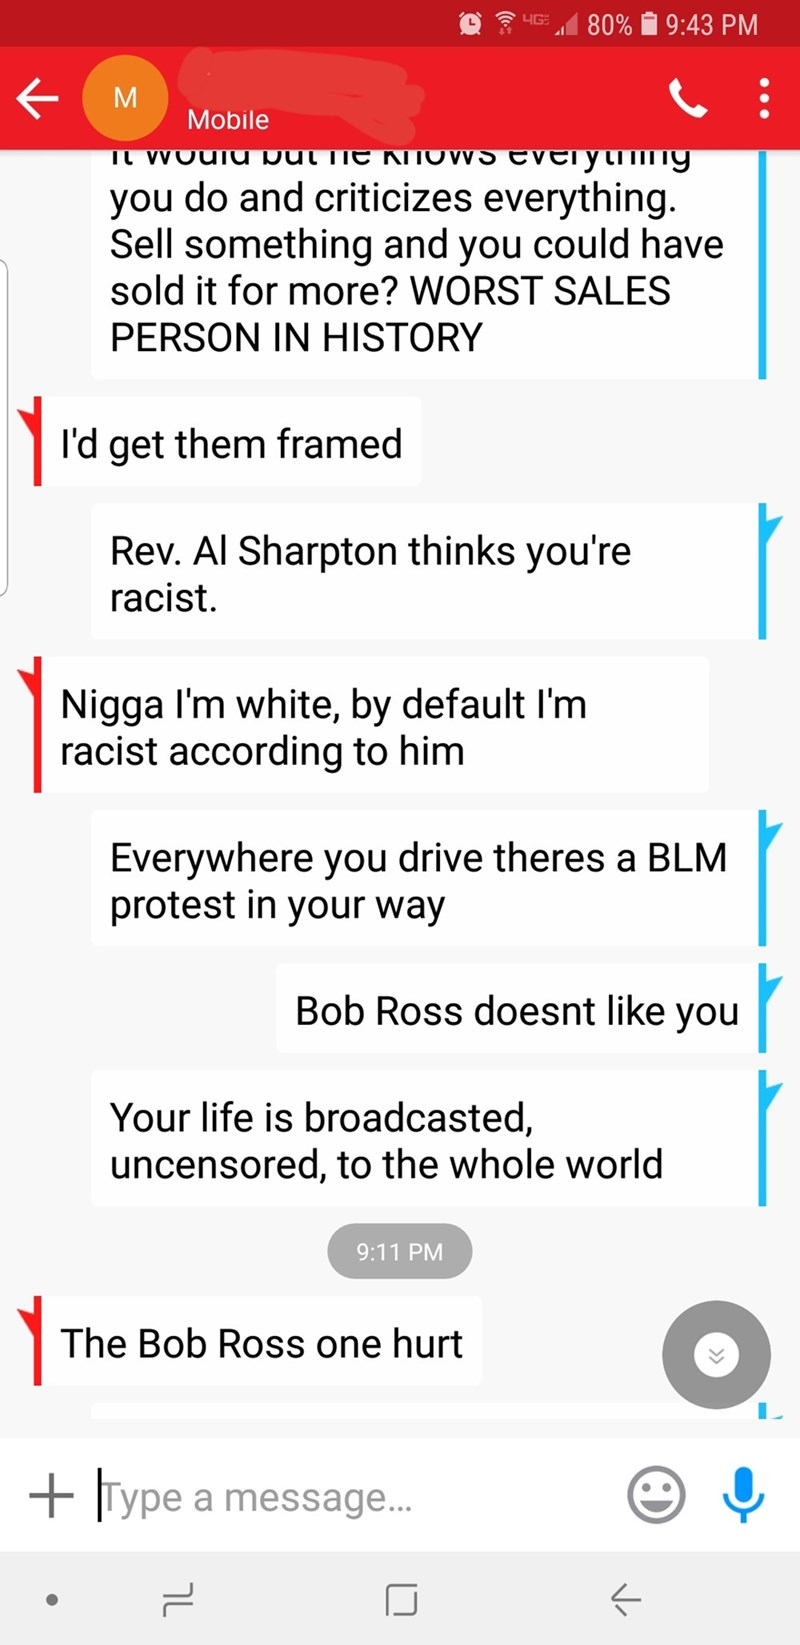 ruin a life - Text - 4G 80% 9:43 PM M Mobile густту you do and criticizes everything. Sell something and you could have sold it for more? WORST SALES TL VVOUIU Dul iIE KITOWVS EV PERSON IN HISTORY l'd get them framed Rev. Al Sharpton thinks you're racist. Nigga I'm white, by default I'm racist according to him Everywhere you drive theres a BLM protest in your way Bob Ross doesnt like you Your life is broadcasted, uncensored, to the whole world 9:11 PM The Bob Ross one hurt Type a message...